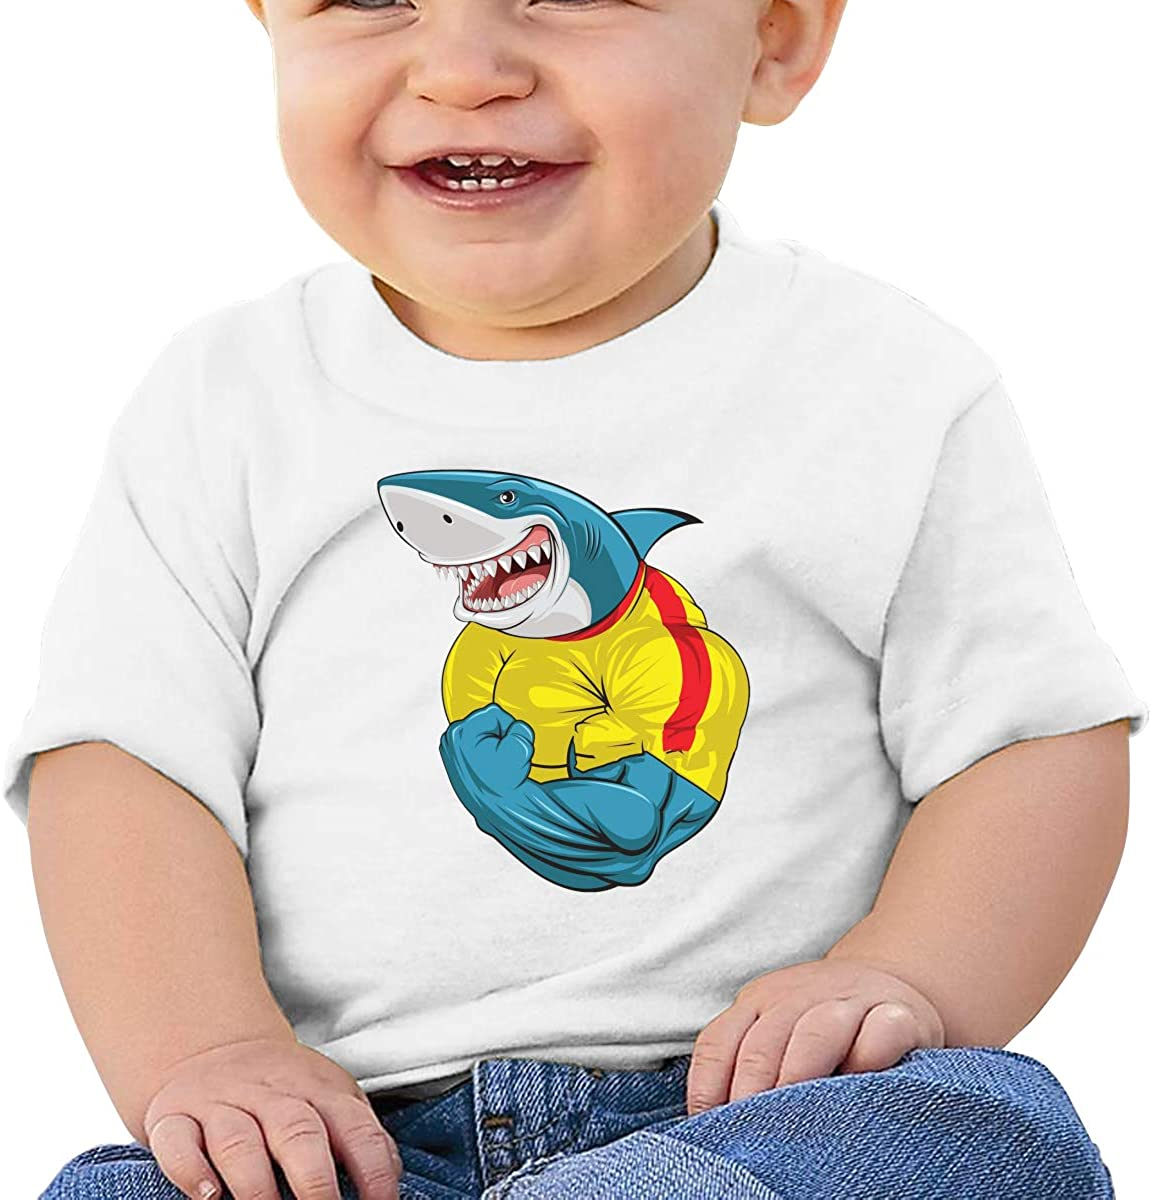 Hipster Toothy Shark Shows Biceps Angry Bodybuilding All Cotton Unisex Baby Shirts Short Sleeve Tee